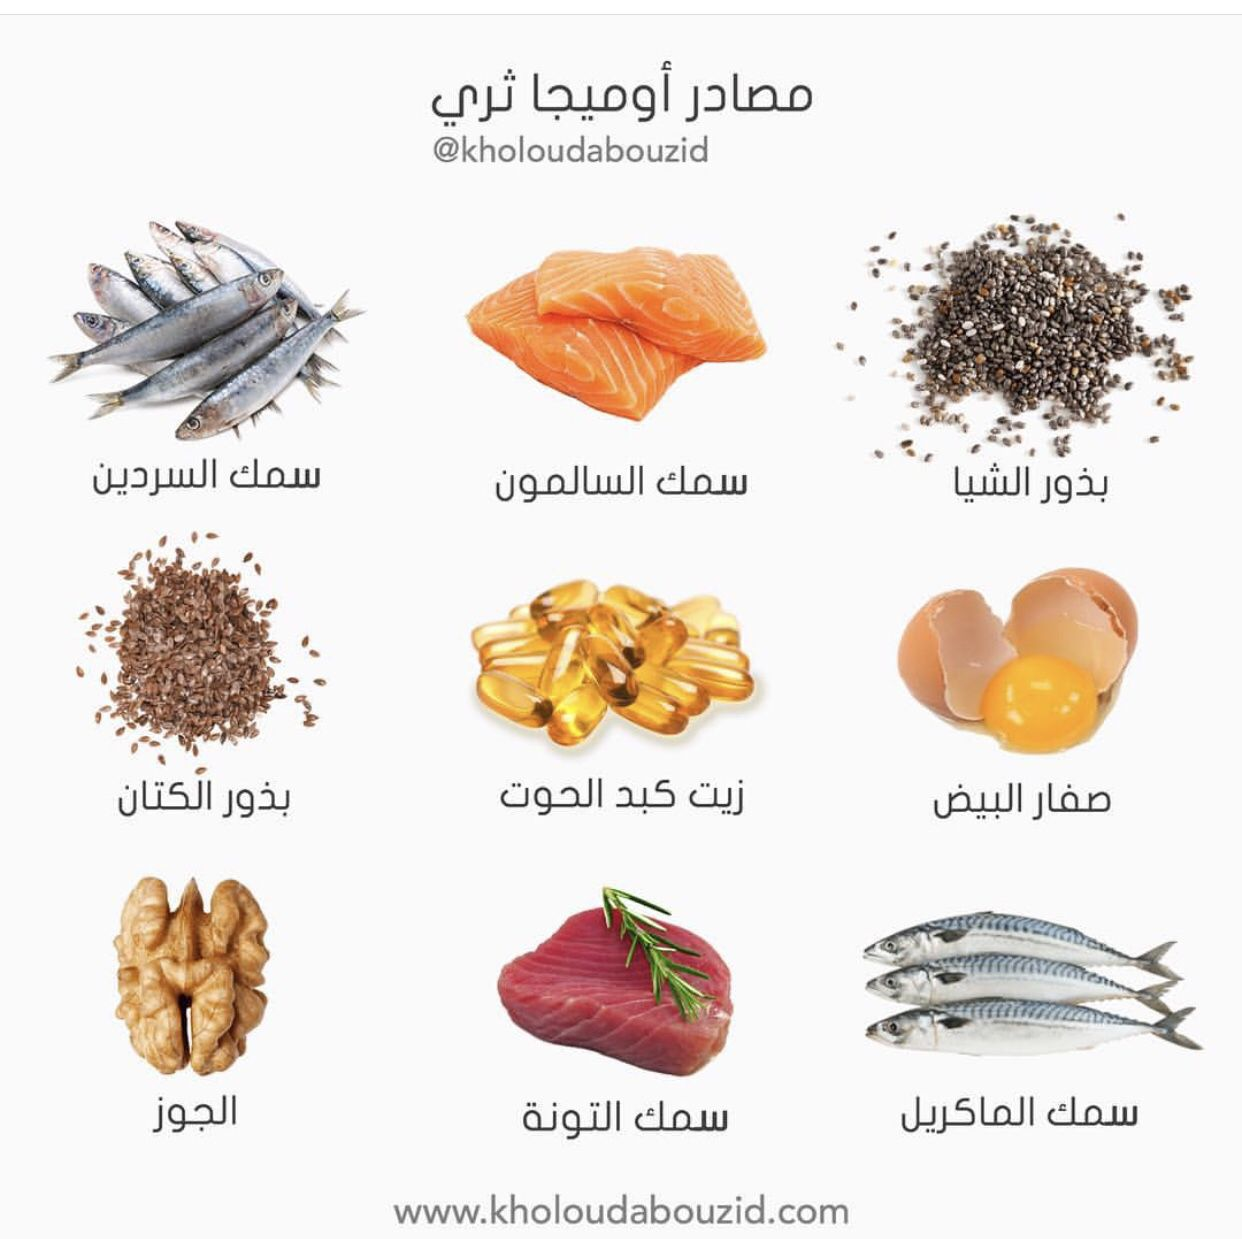 Pin By براءة حروف On دايت Health Food Health Fitness Nutrition Health Facts Food